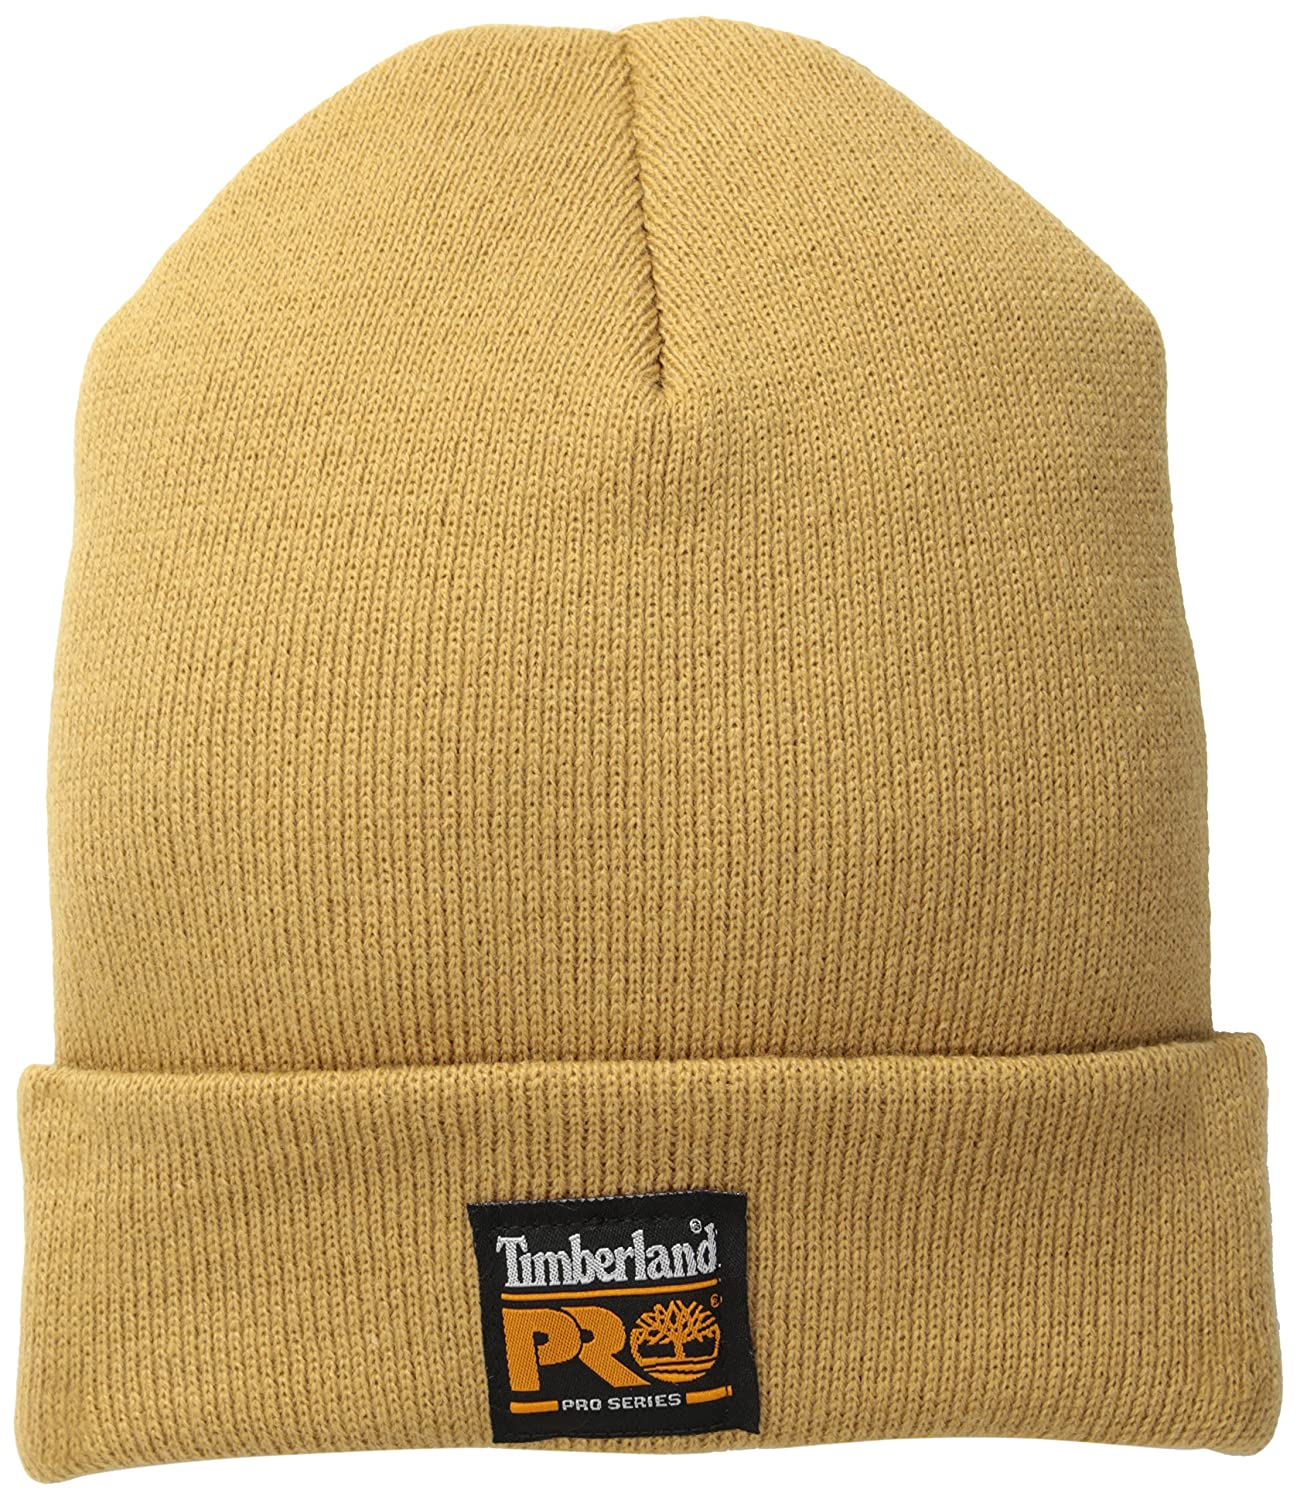 Top 10 wholesale Knit Watch Cap - Chinabrands.com 3fa26e216572